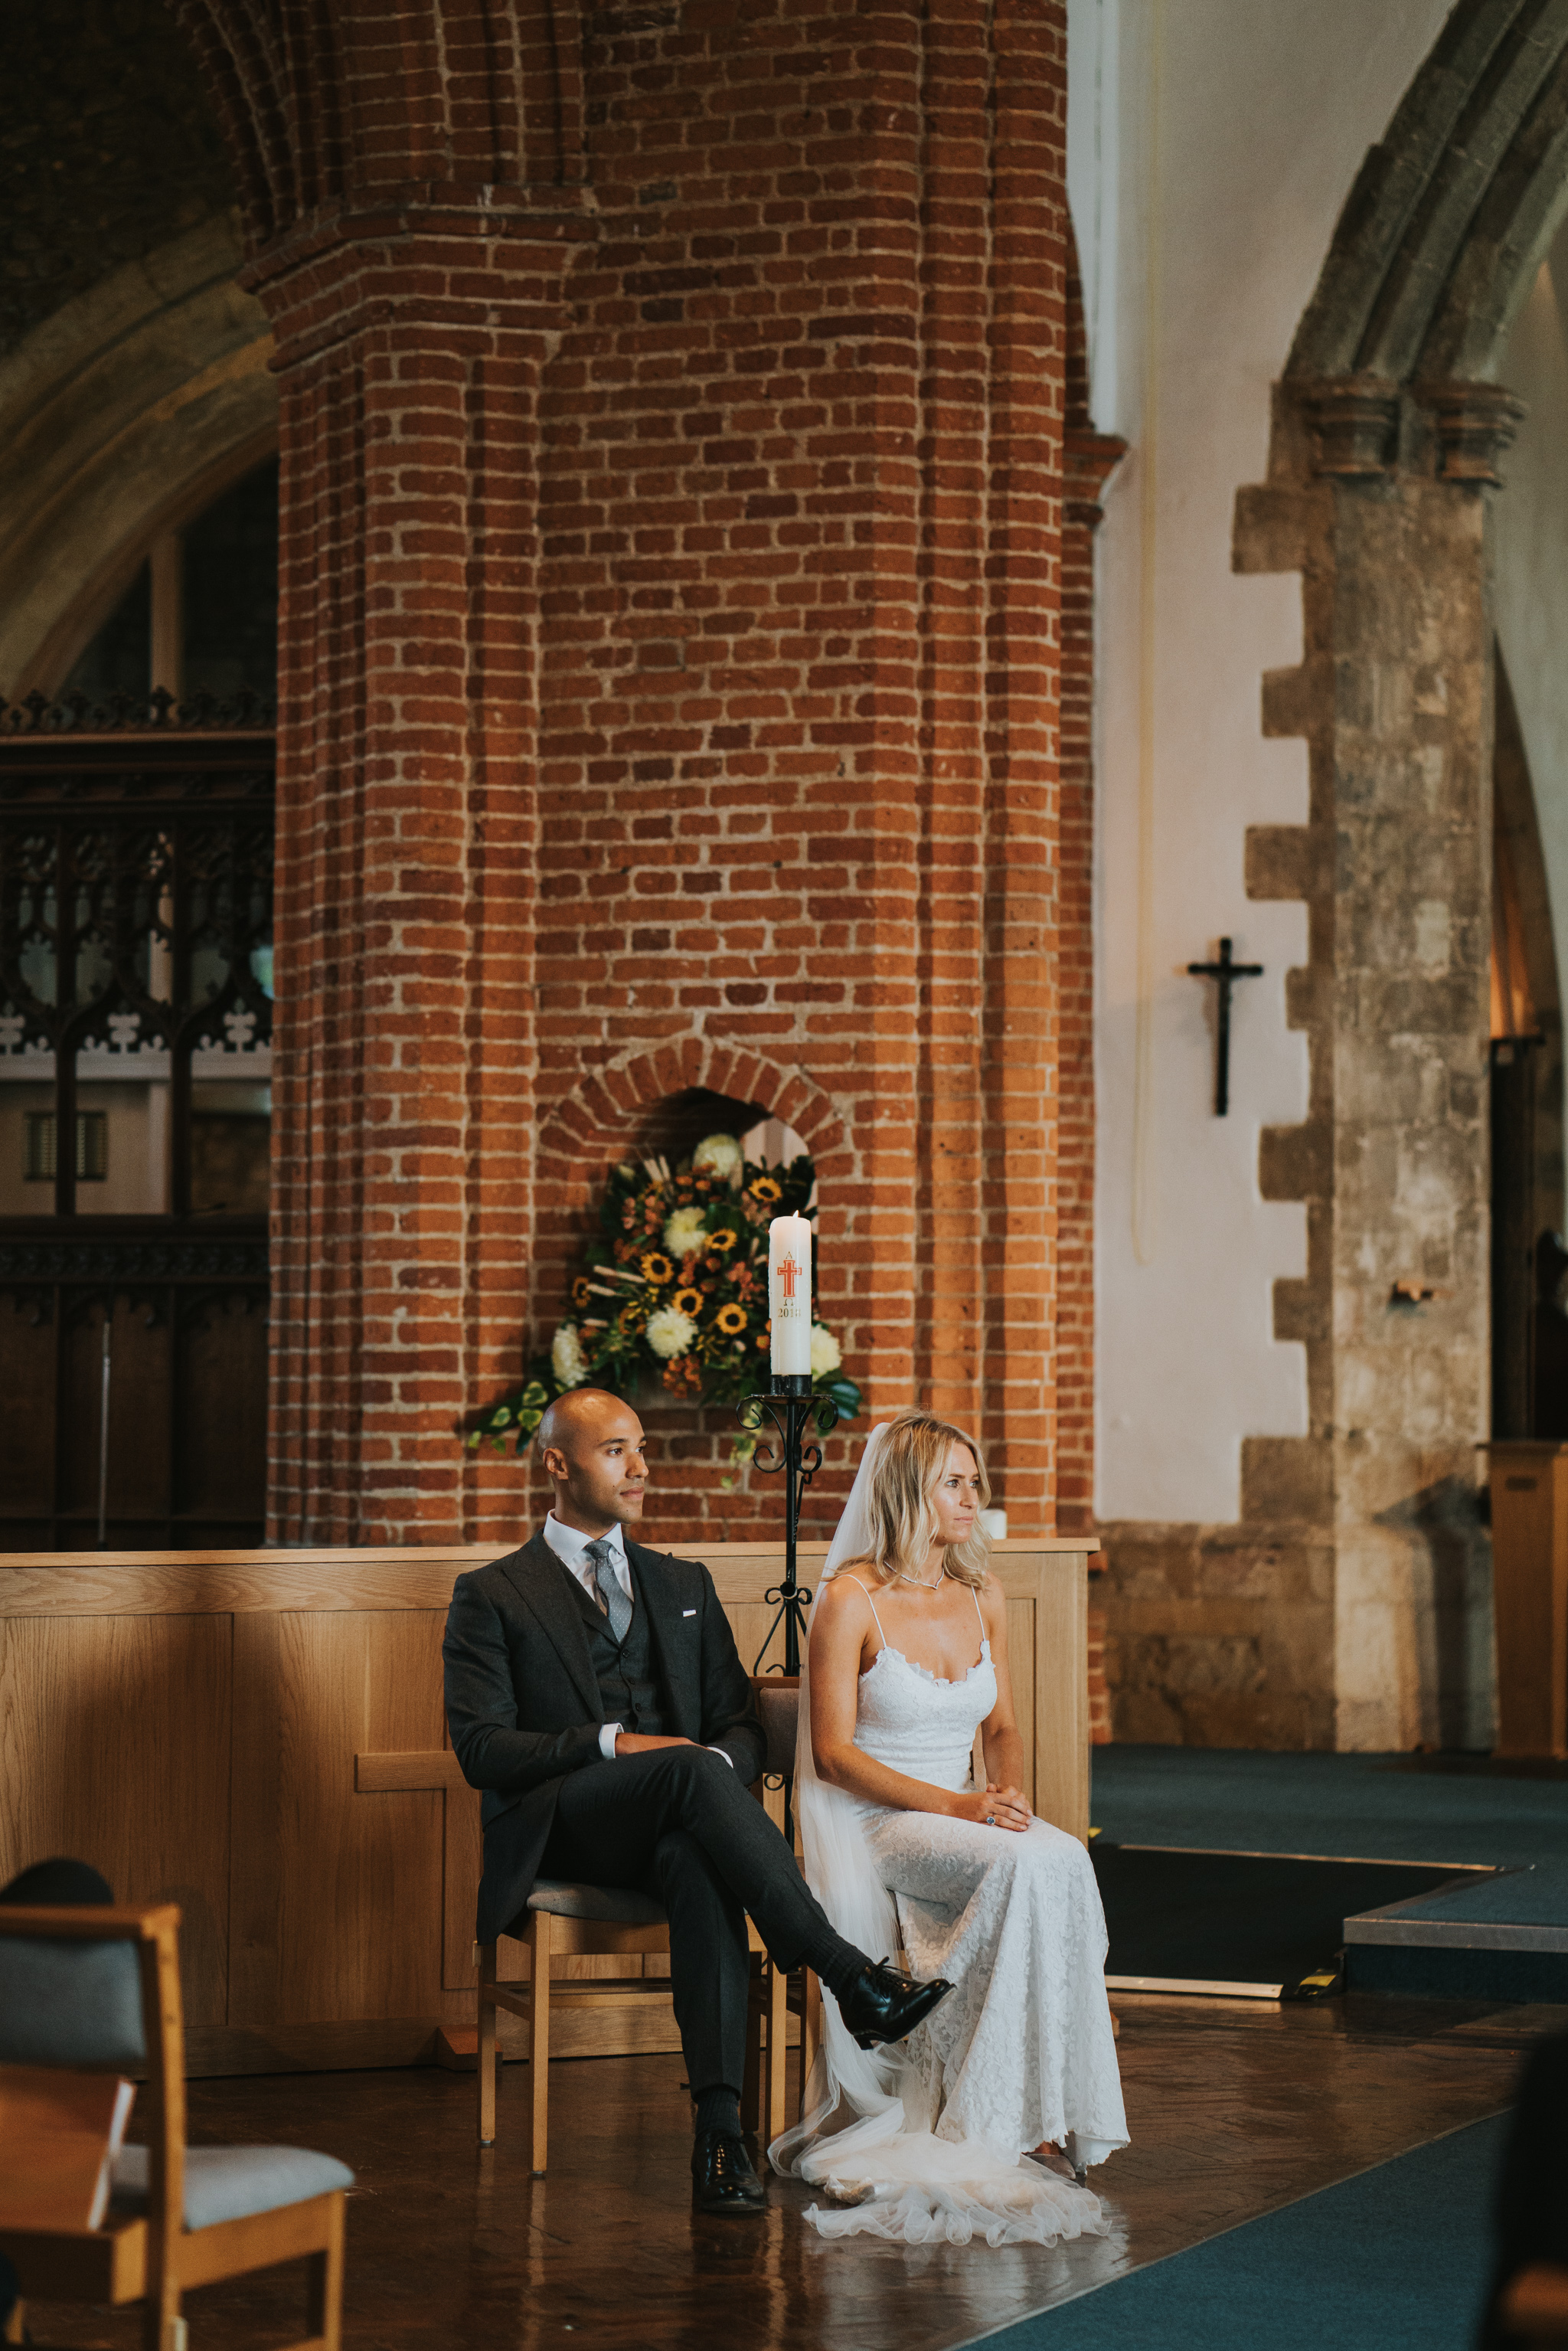 intimate-english-church-wedding-sarah-alex-colchester-essex-grace-elizabeth-colchester-essex-alternative-wedding-lifestyle-photographer-essex-suffolk-norfolk-devon (37 of 92).jpg